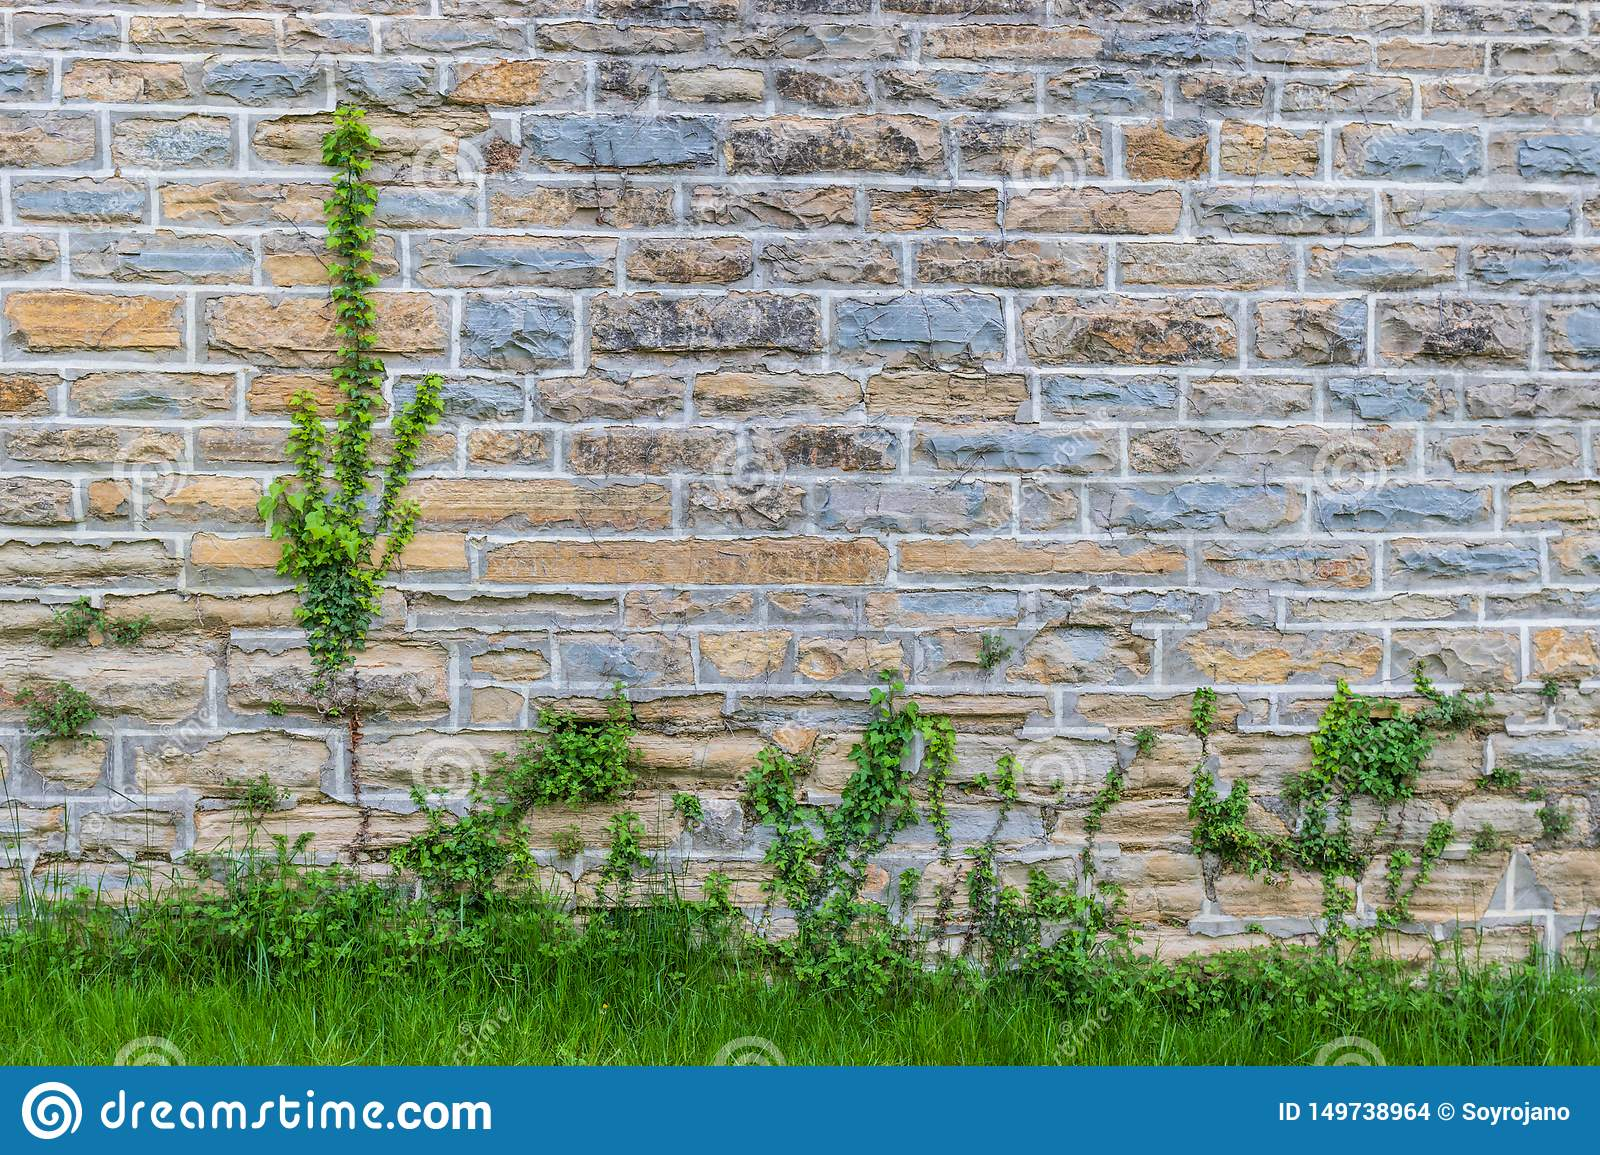 Wall with colored bricks & plants